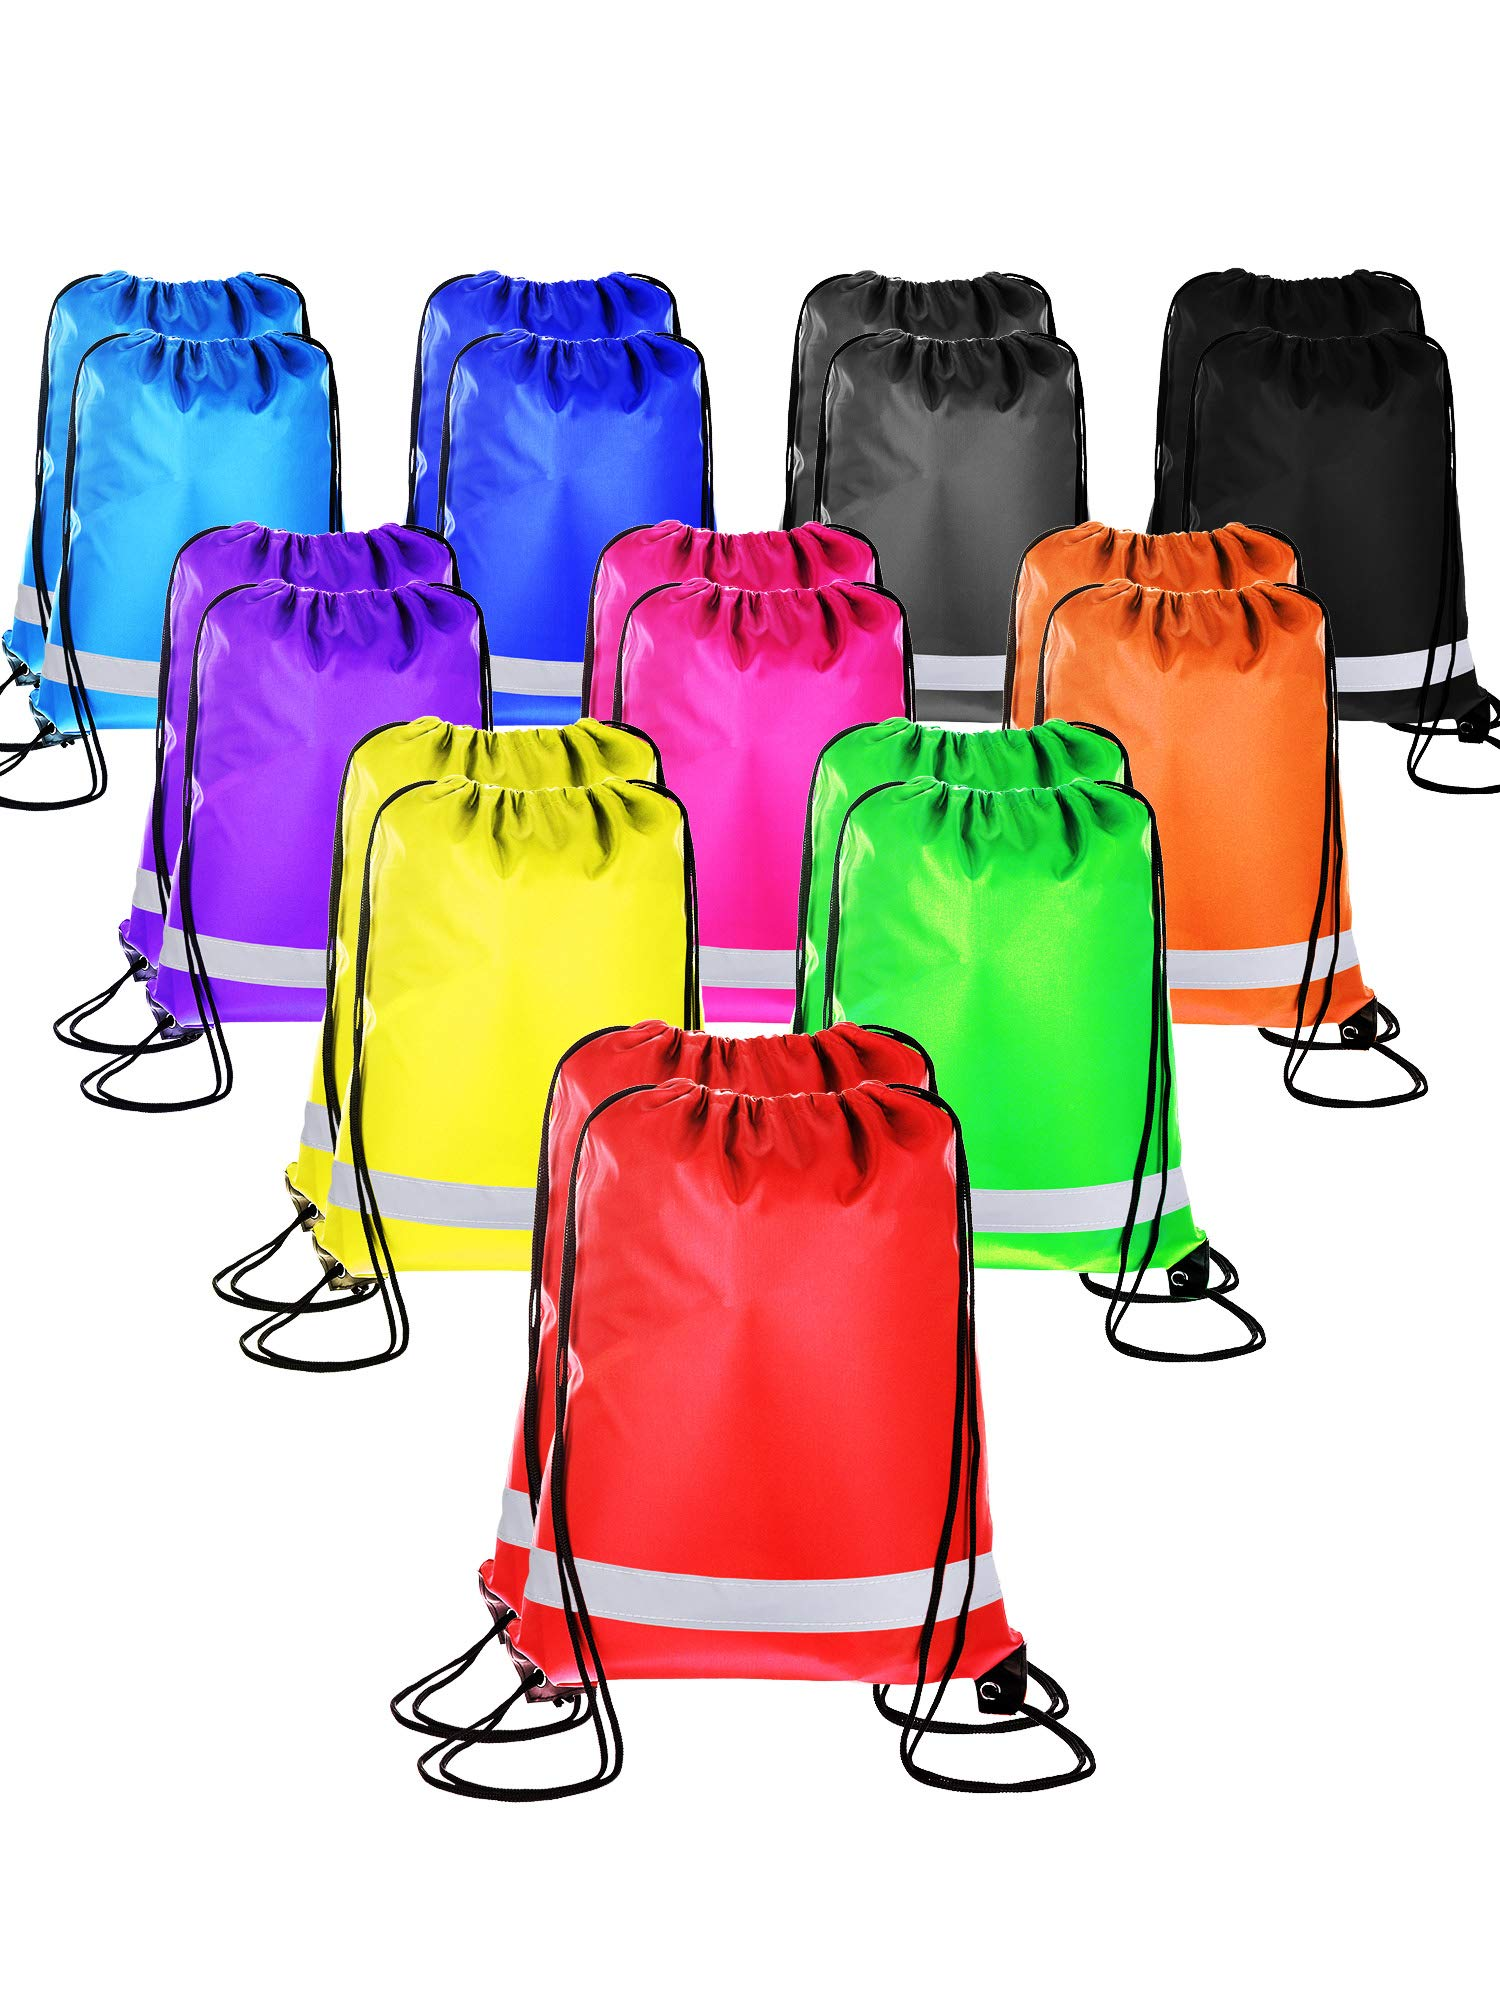 20 Pieces Drawstring Backpack Sport Bags Cinch Tote Bags for Traveling and Storage (Reflective 10 Colors, Size 1) by BBTO